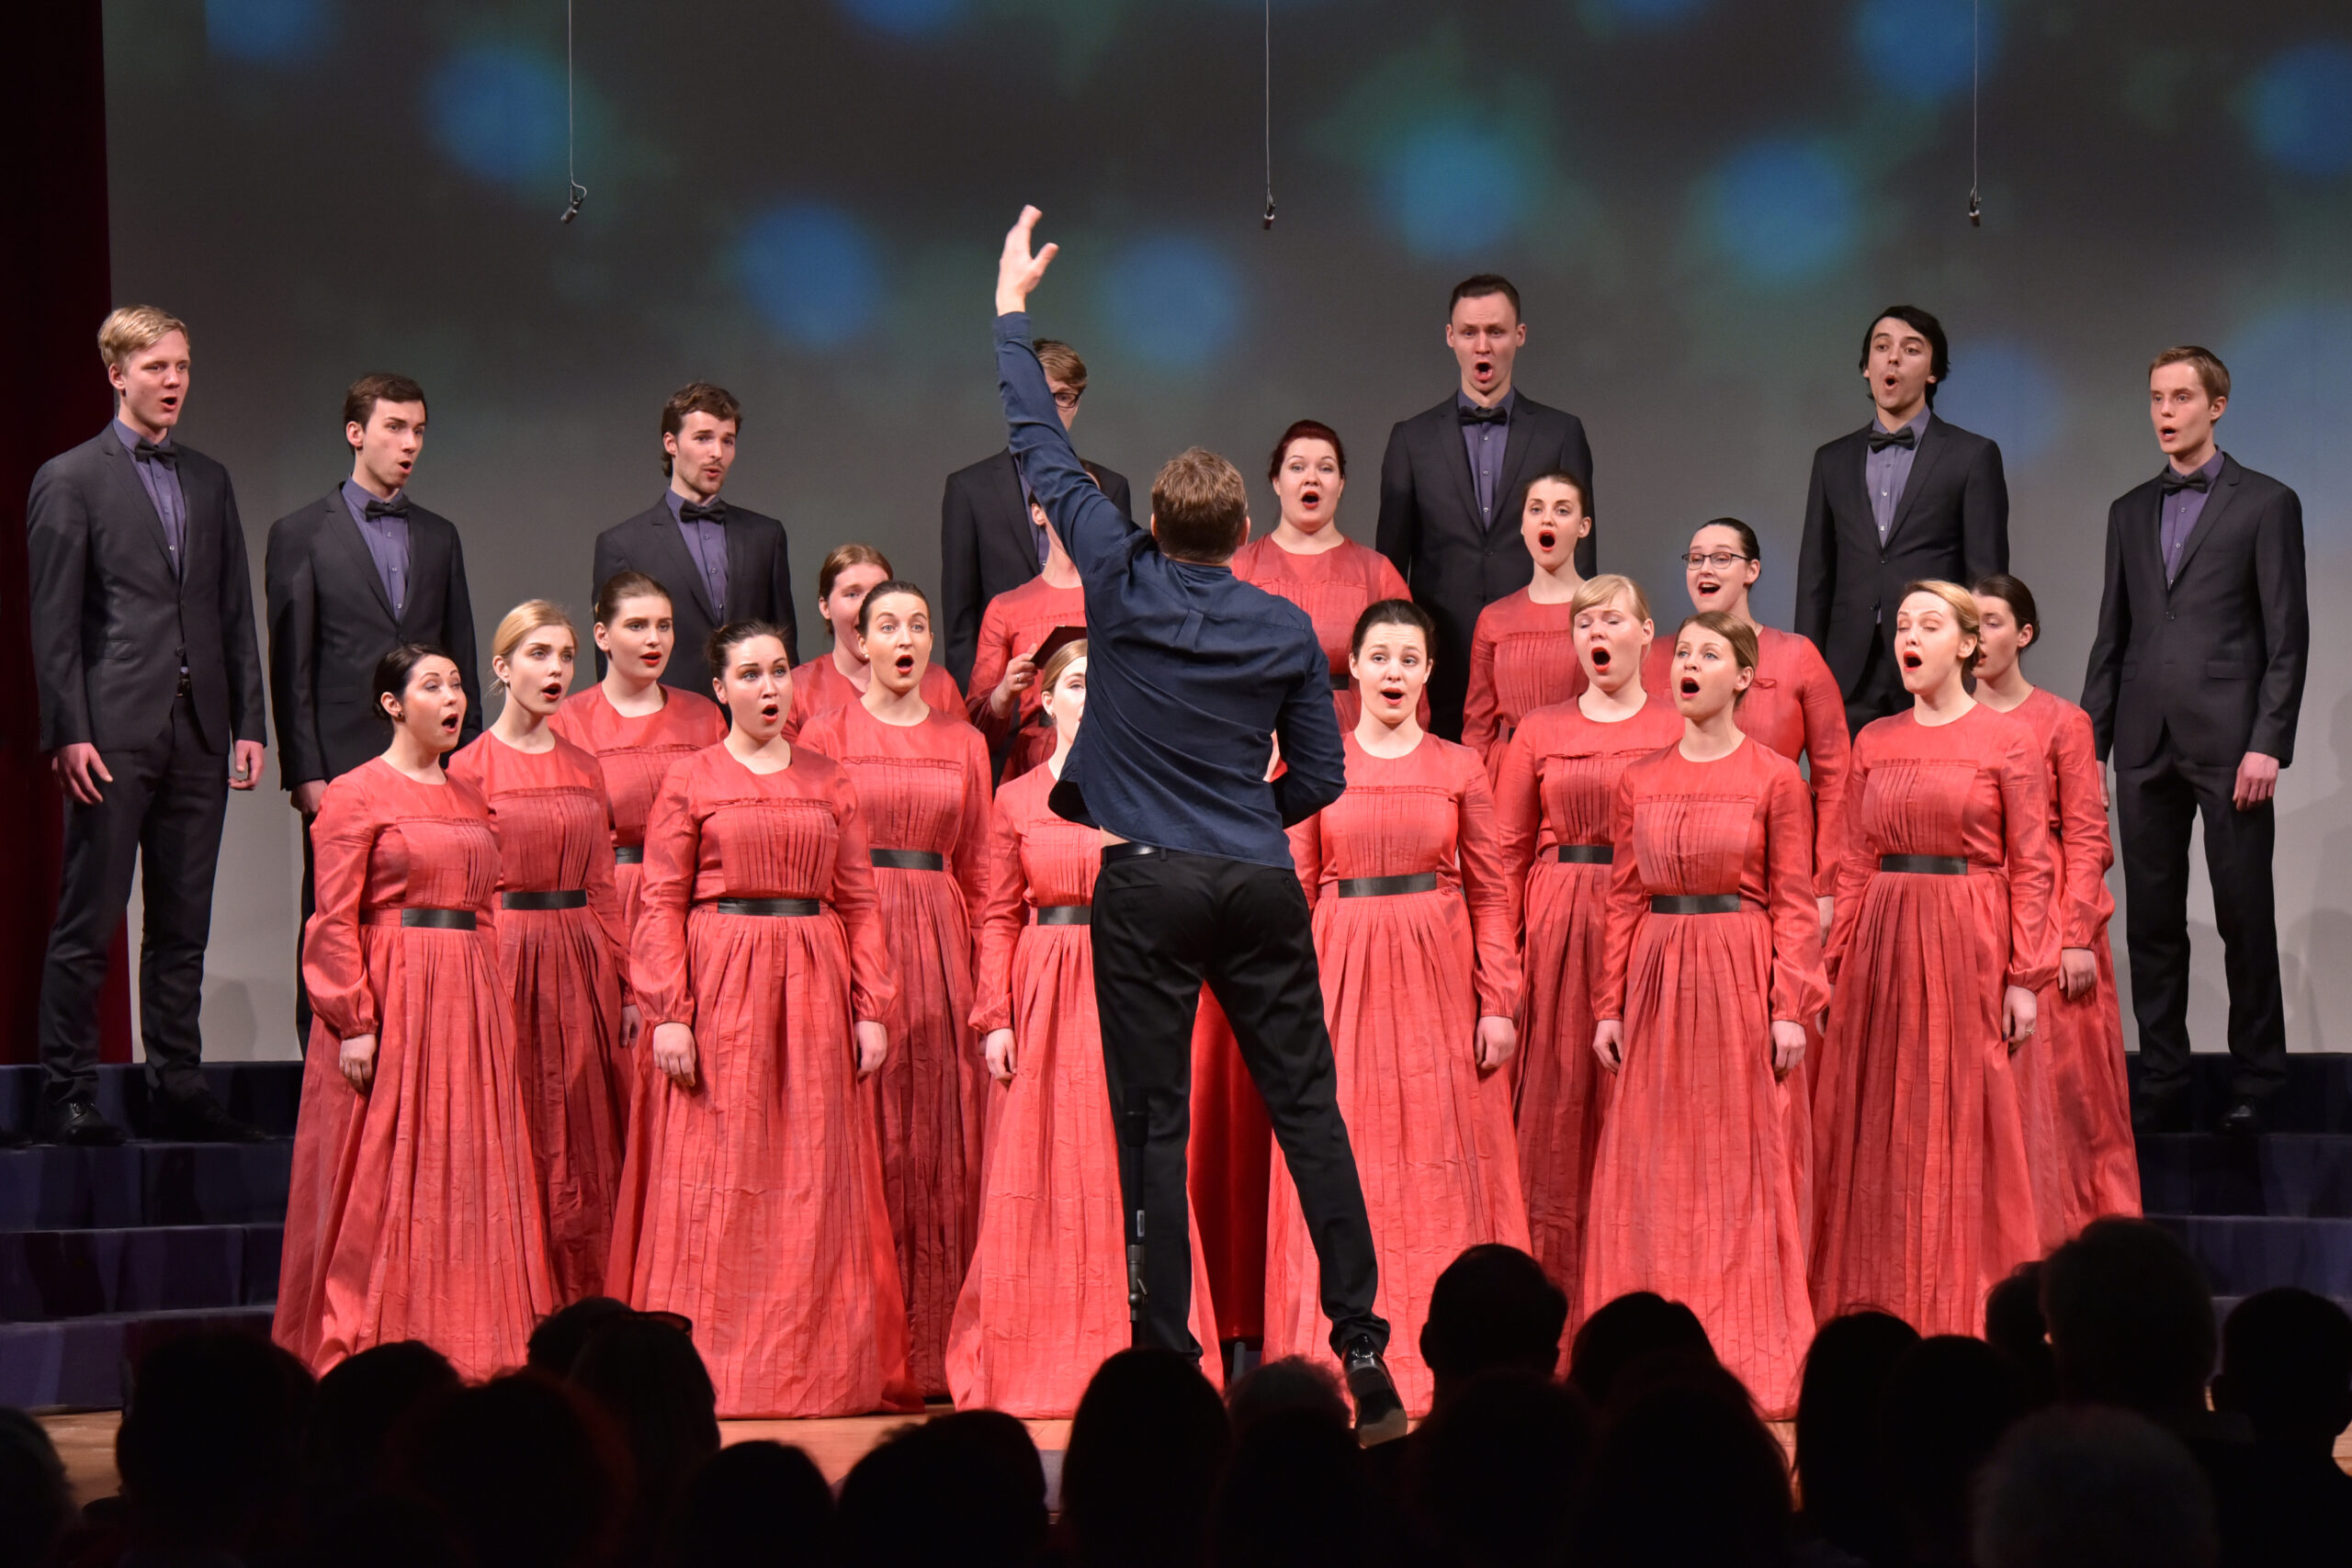 Janez Eržen, Slovenia: A Little Higher, Please, 2017, Youth Choir Balsis, Latvia - 14th International Choral Competition Gallus, Maribor, 2017. The competition has been a member of the European Grand Prix for Choral Singing Association since 2008.